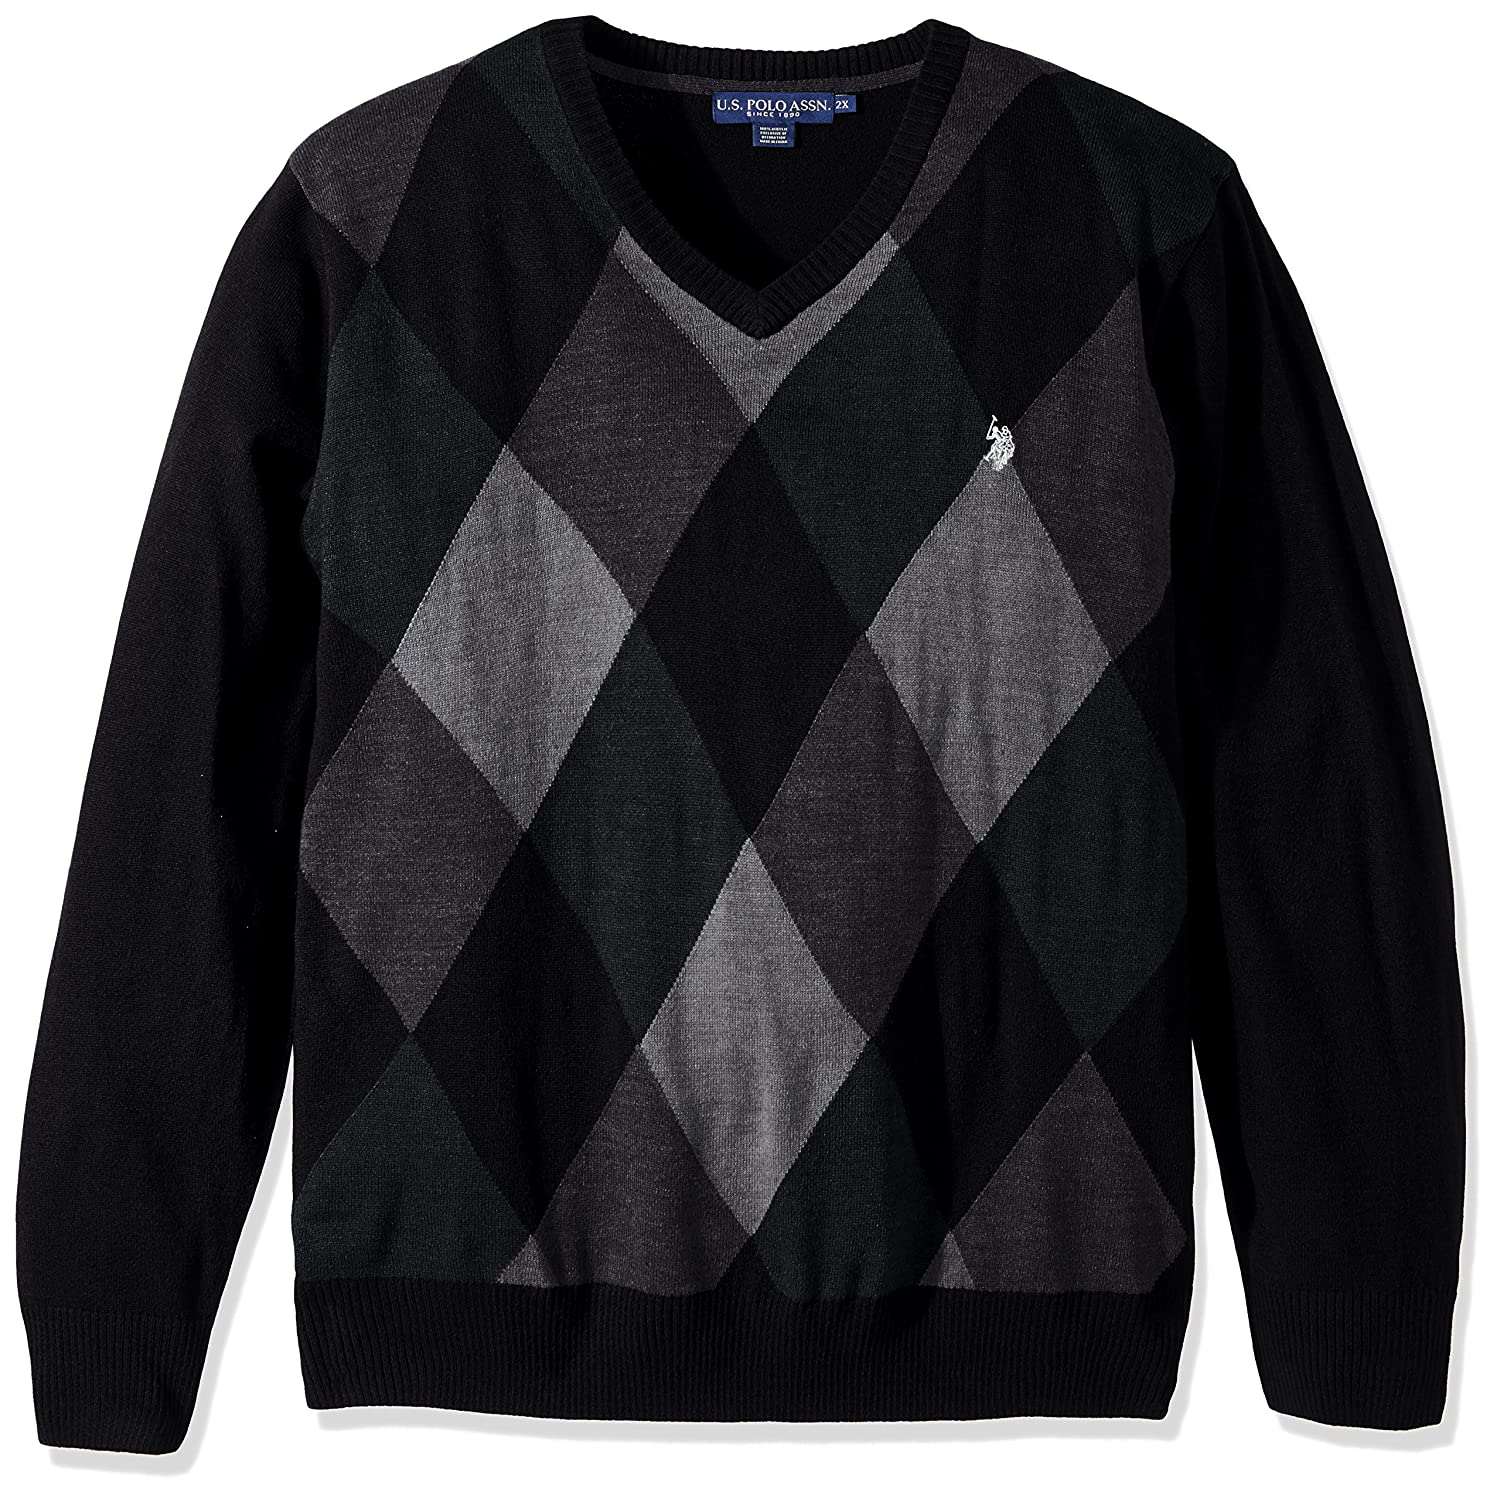 U.S. Polo Assn. Mens Soft Acrylic Argyle V-Neck Sweater 5697X